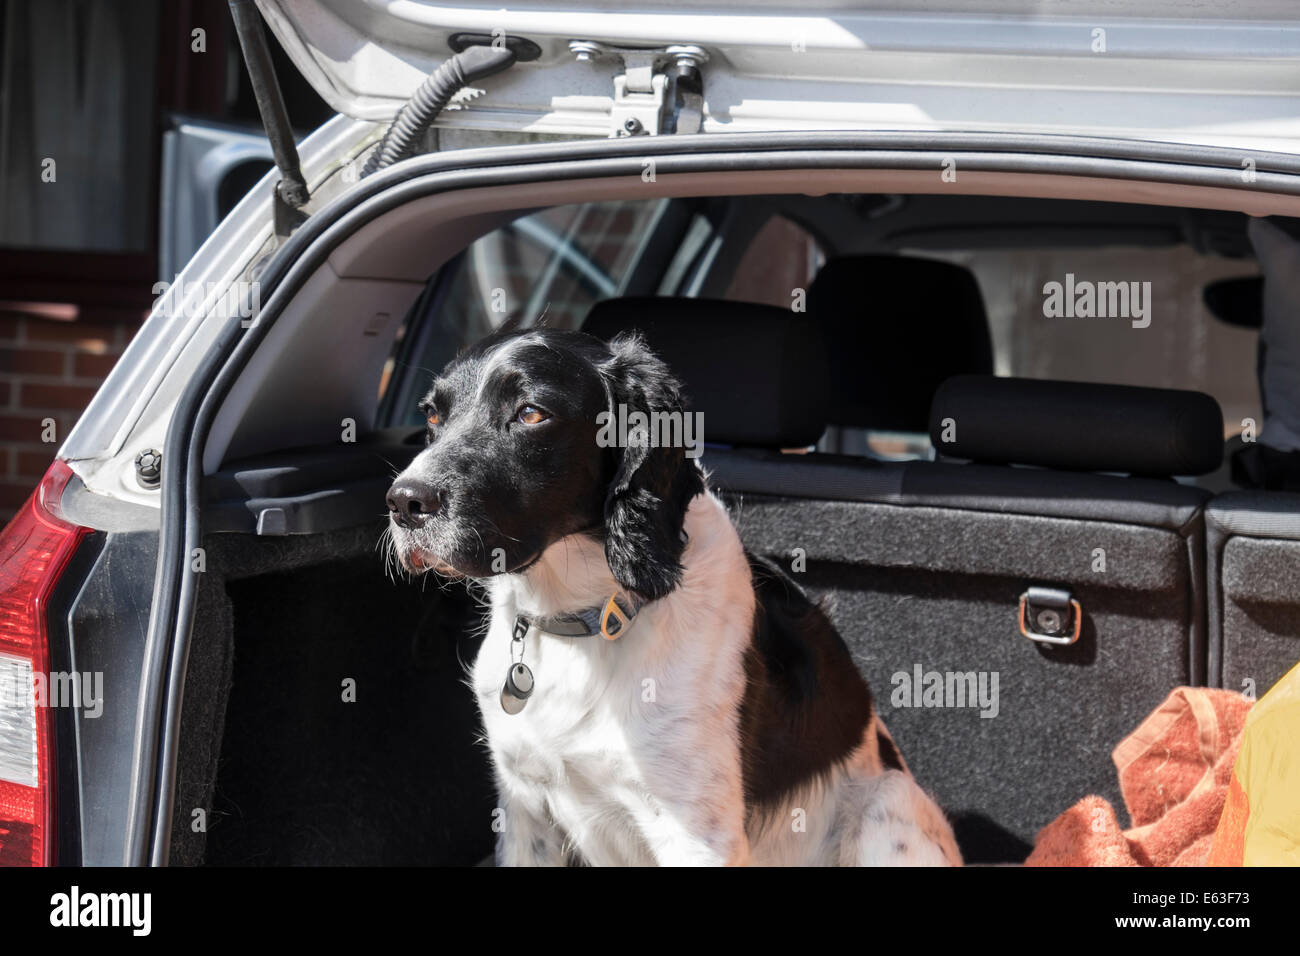 A black and white adult English Springer Spaniel dog sitting patiently in a hatchback car boot with tailgate door - Stock Image